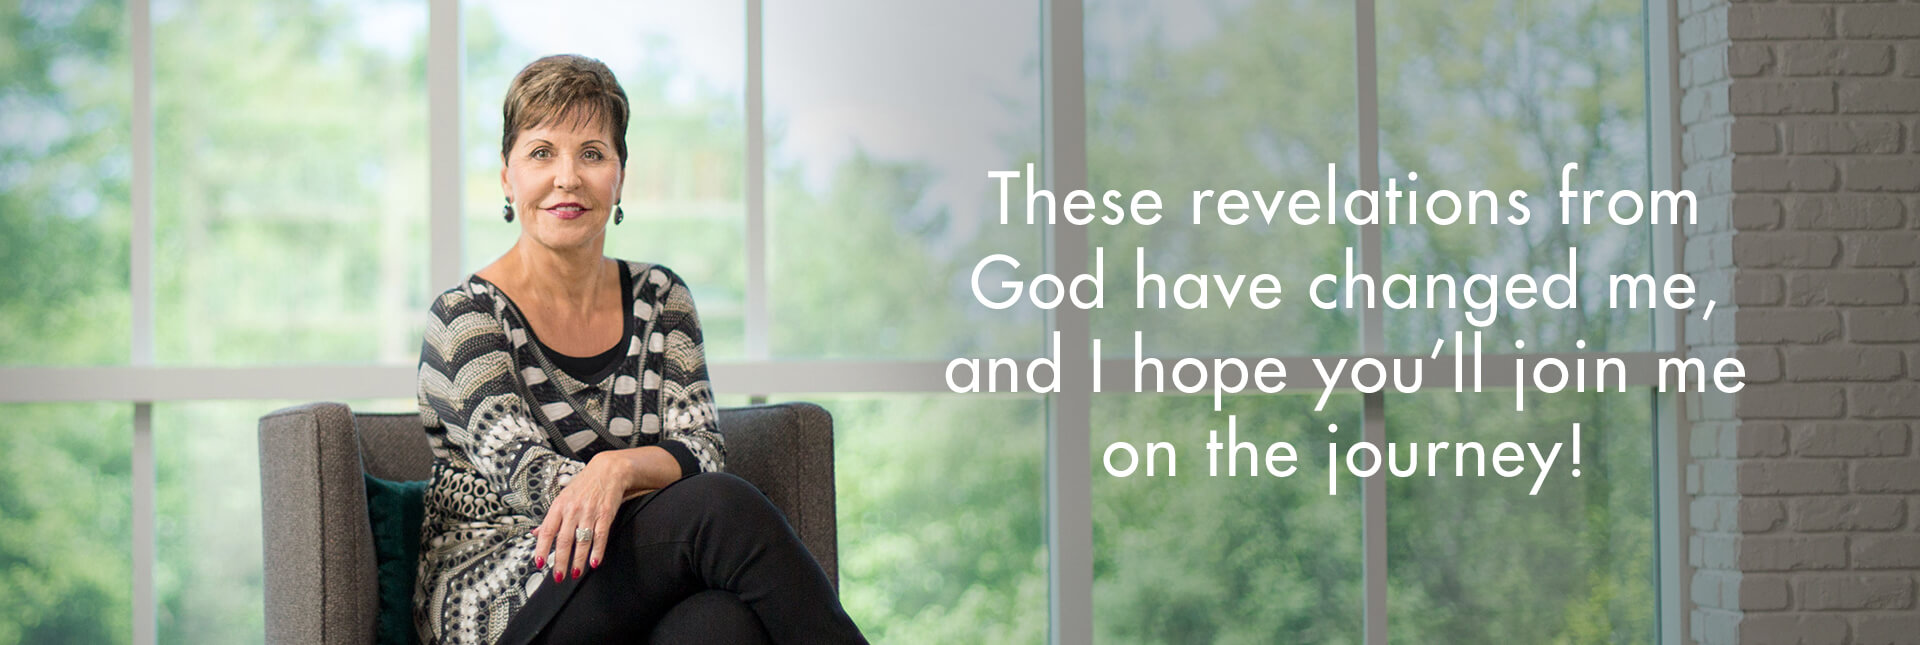 These revelations from God have changed me, and I hope you'll join me in the journey!